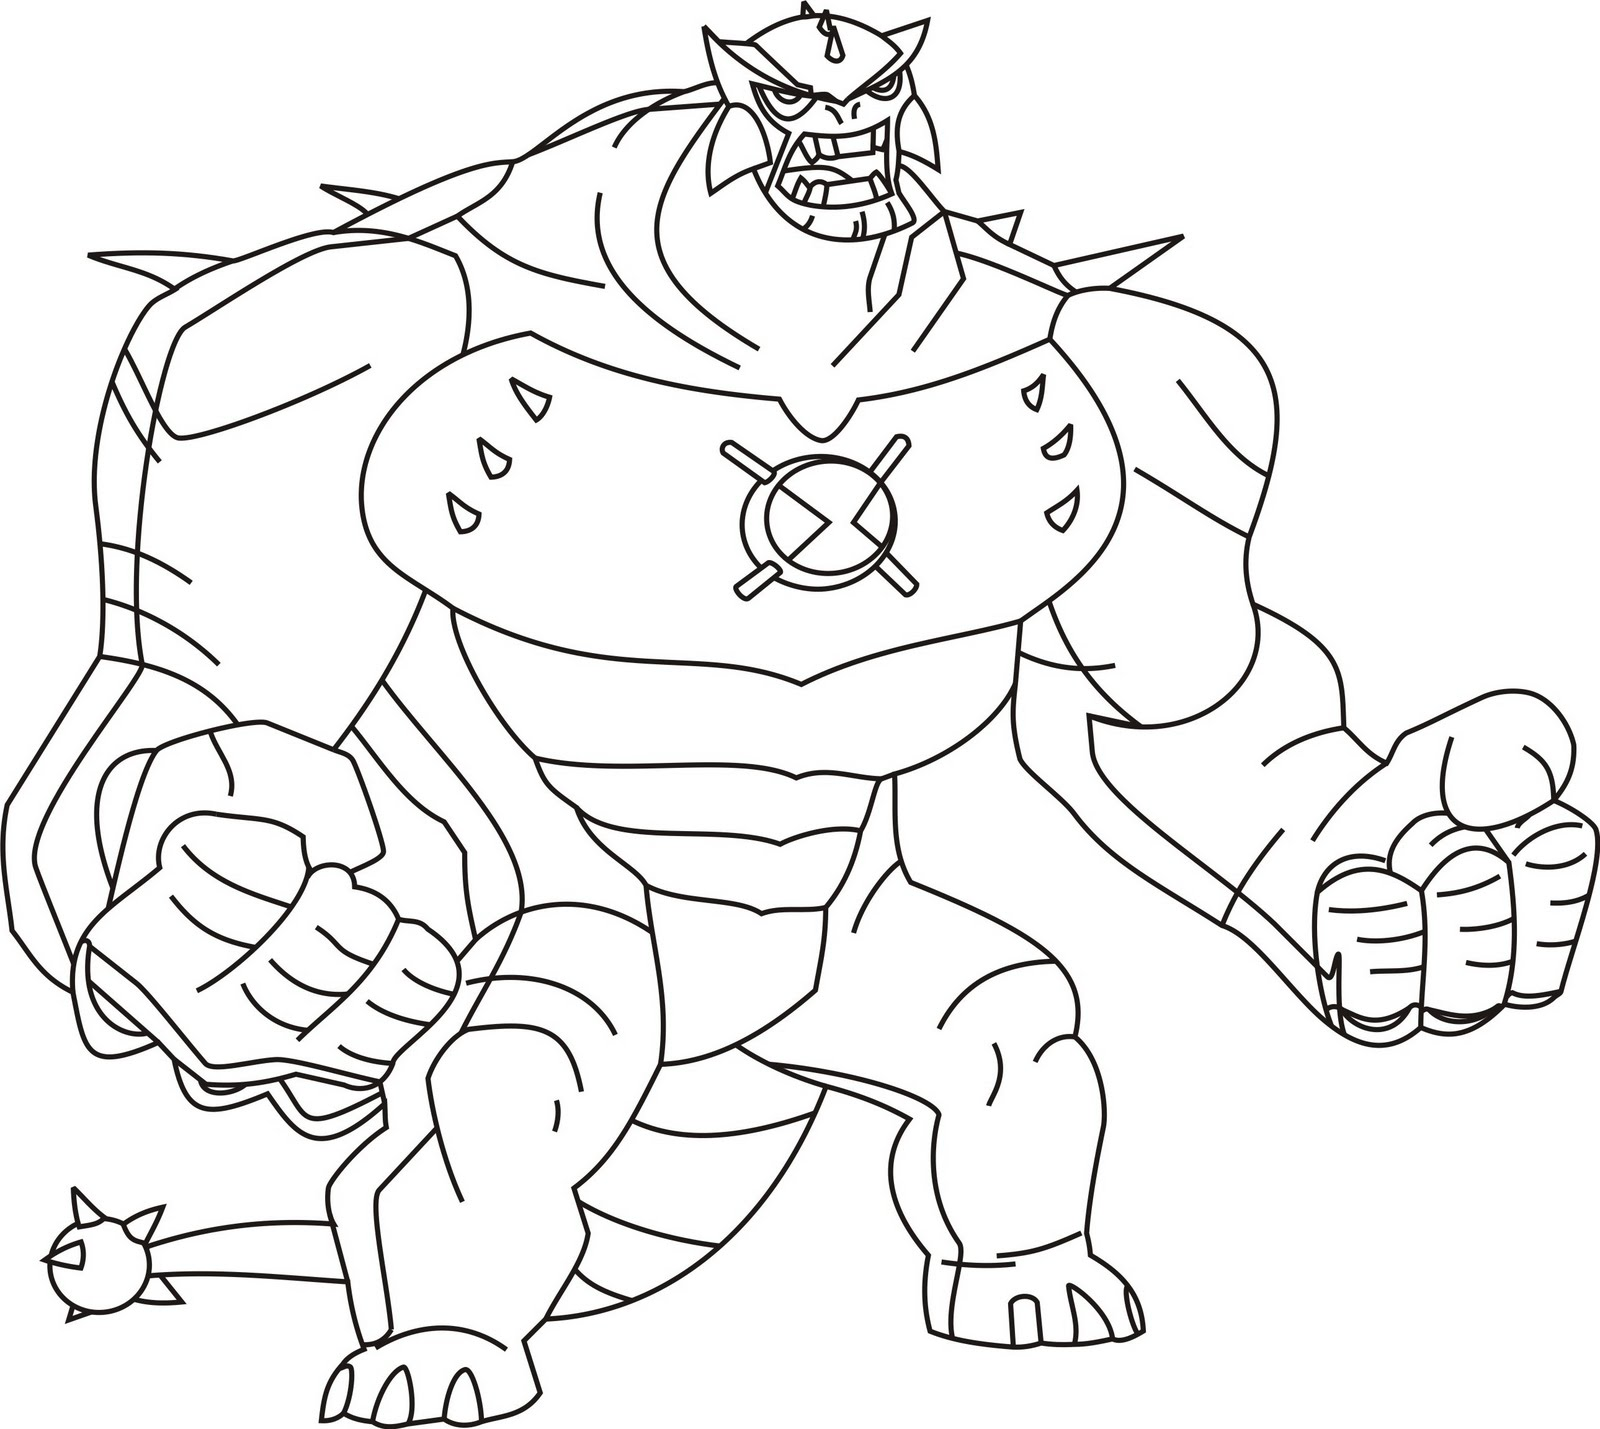 Printable Ben 10 Coloring Pictures